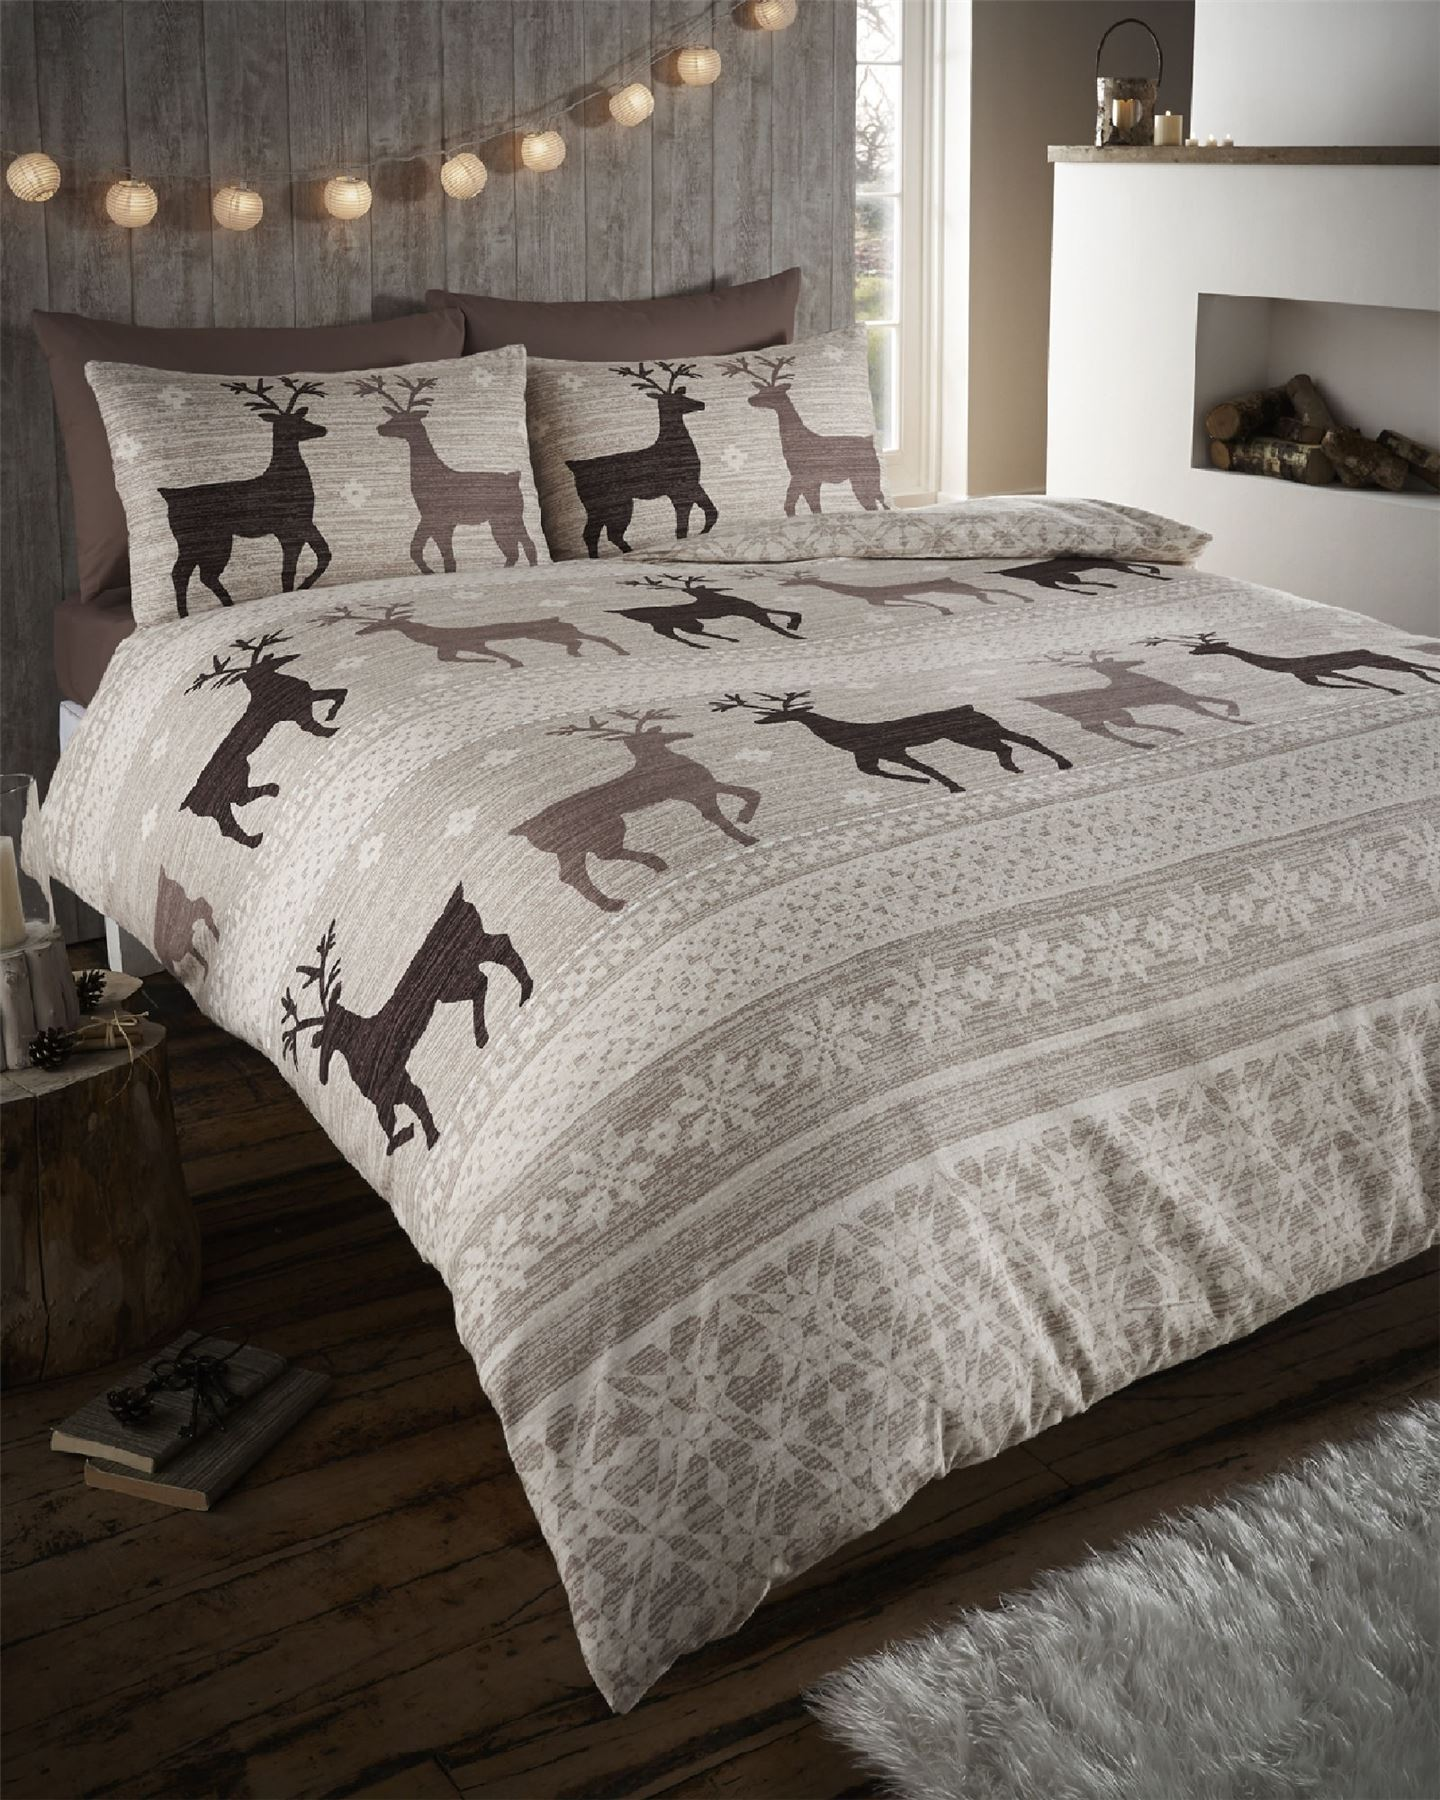 stag deer winter christmas duvet quilt cover bedding set ebay. Black Bedroom Furniture Sets. Home Design Ideas